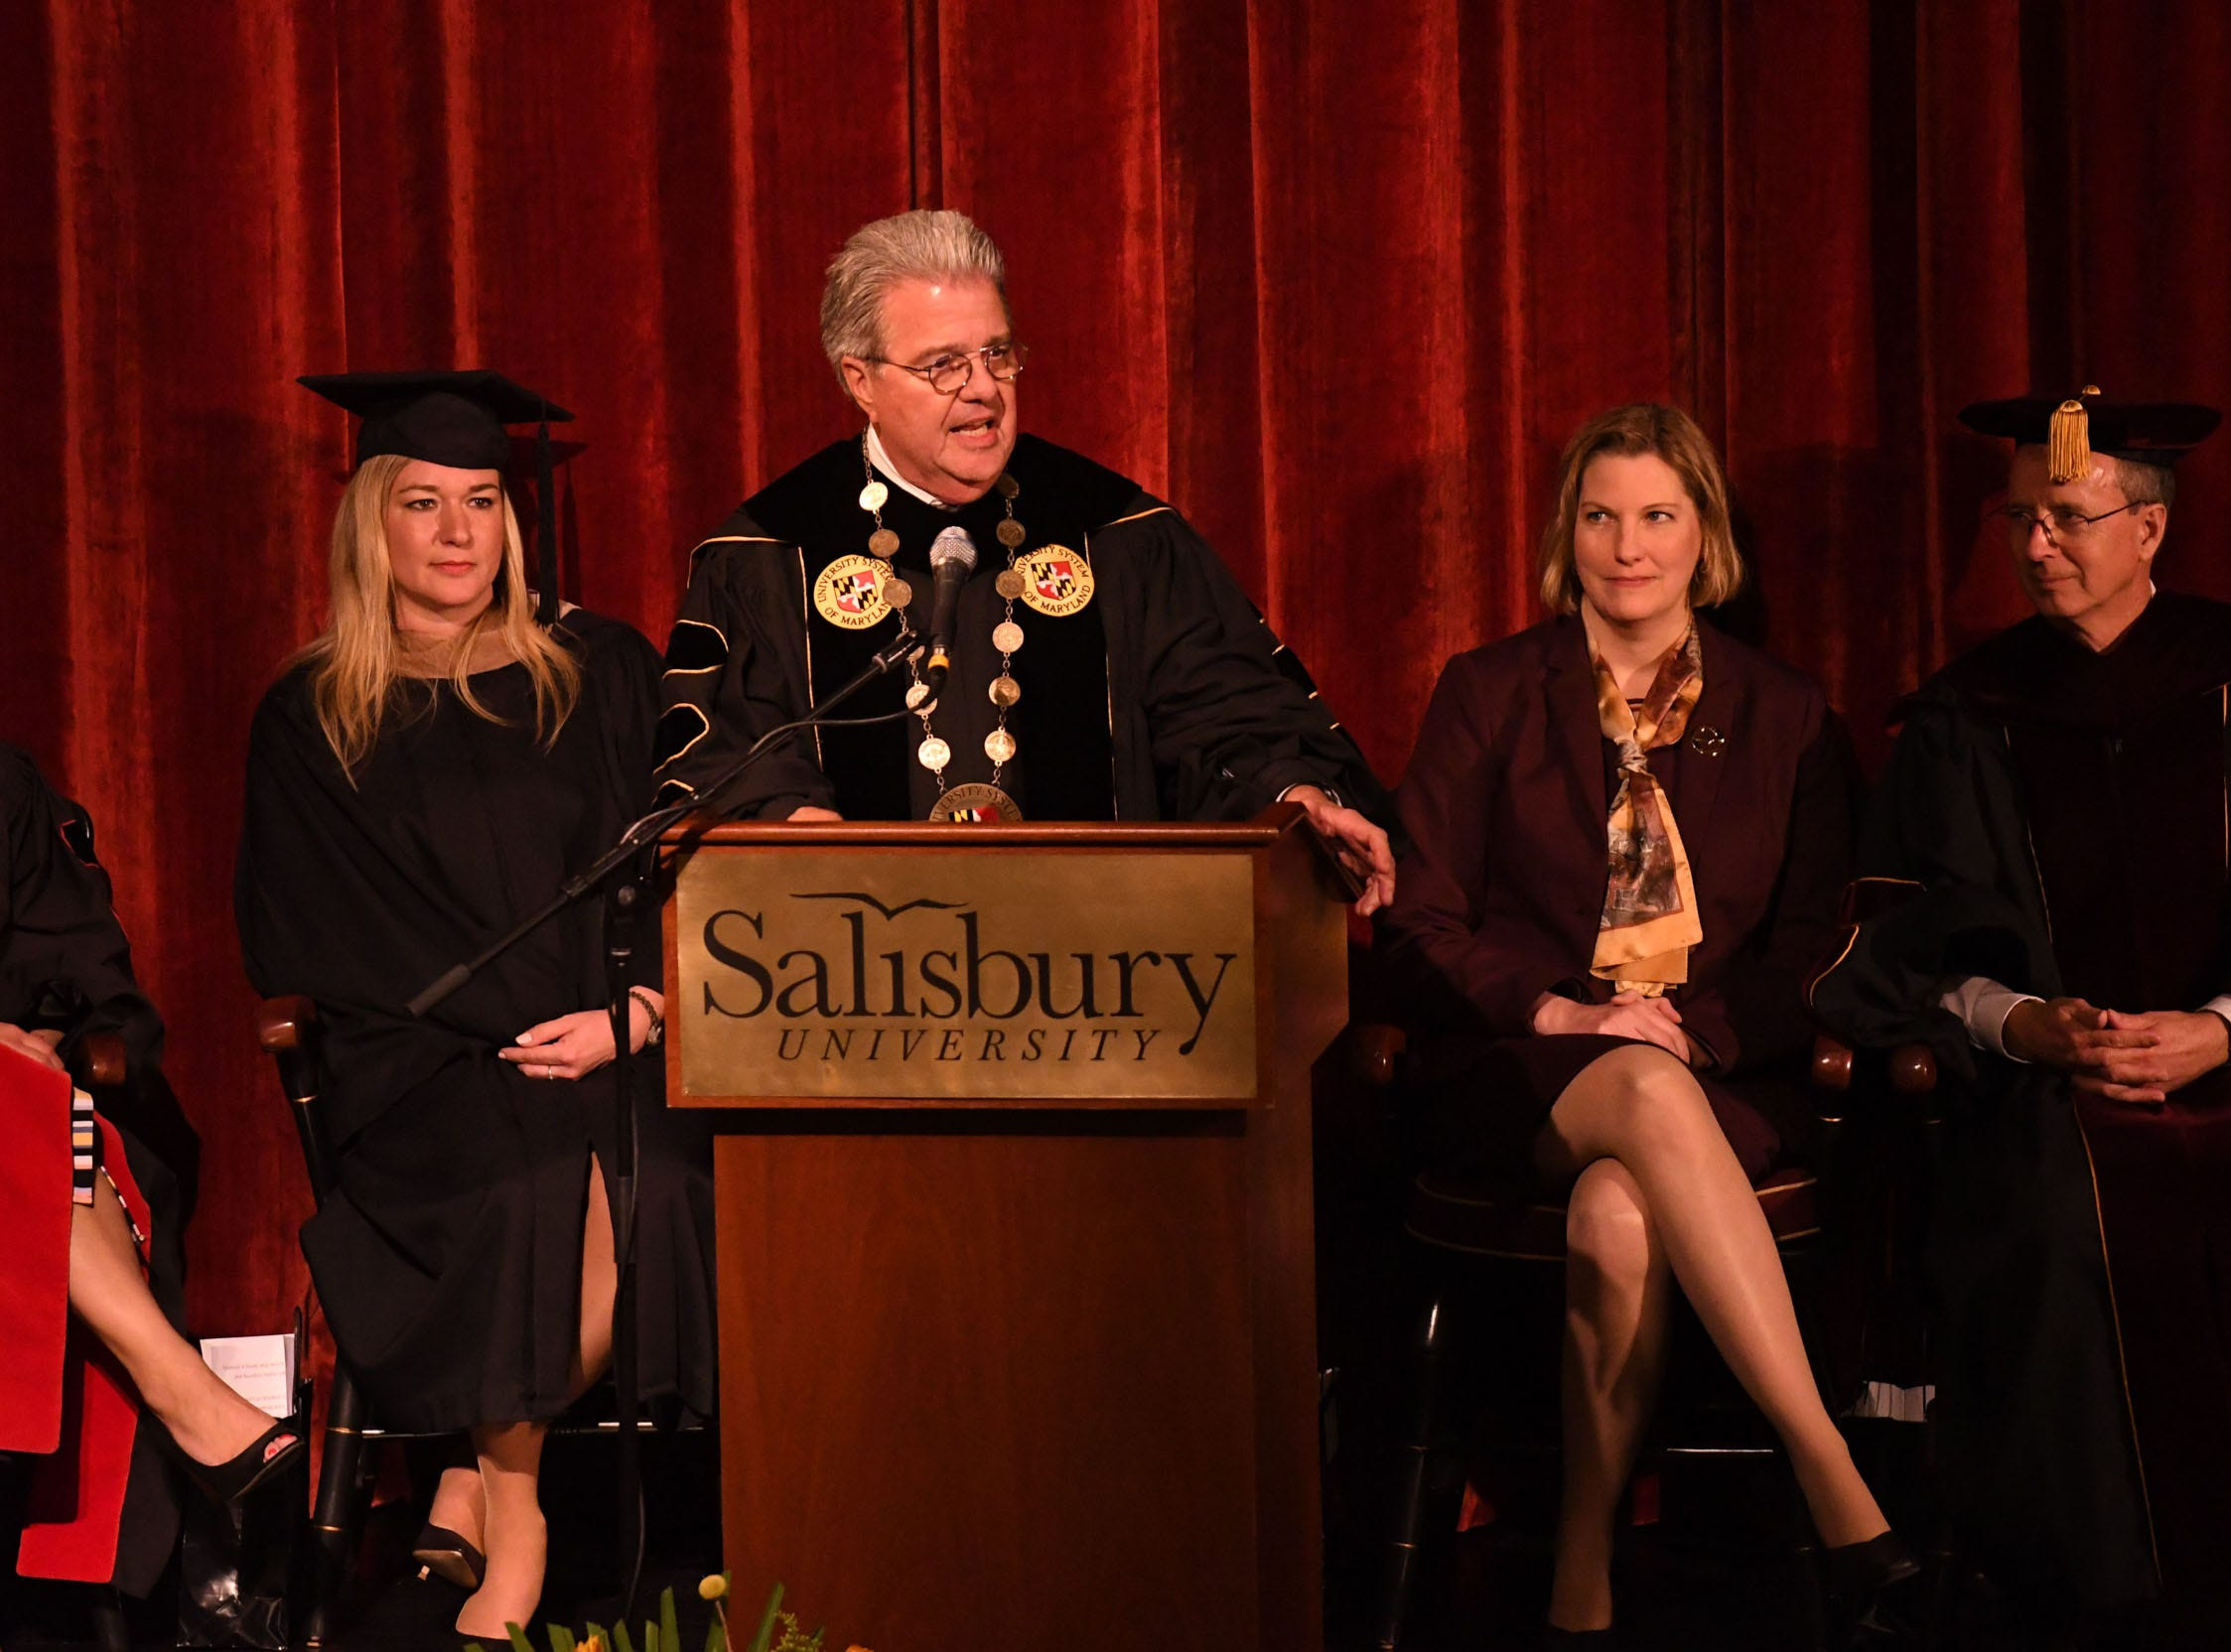 University System of Maryland Chancellor Dr. Robert Caret, speaks during the inauguration of Dr. Charles A. Wight as Salisbury University's ninth president on Wednesday, April 10, 2019 during a ceremony held at Holloway Hall on the campus of Salisbury University.